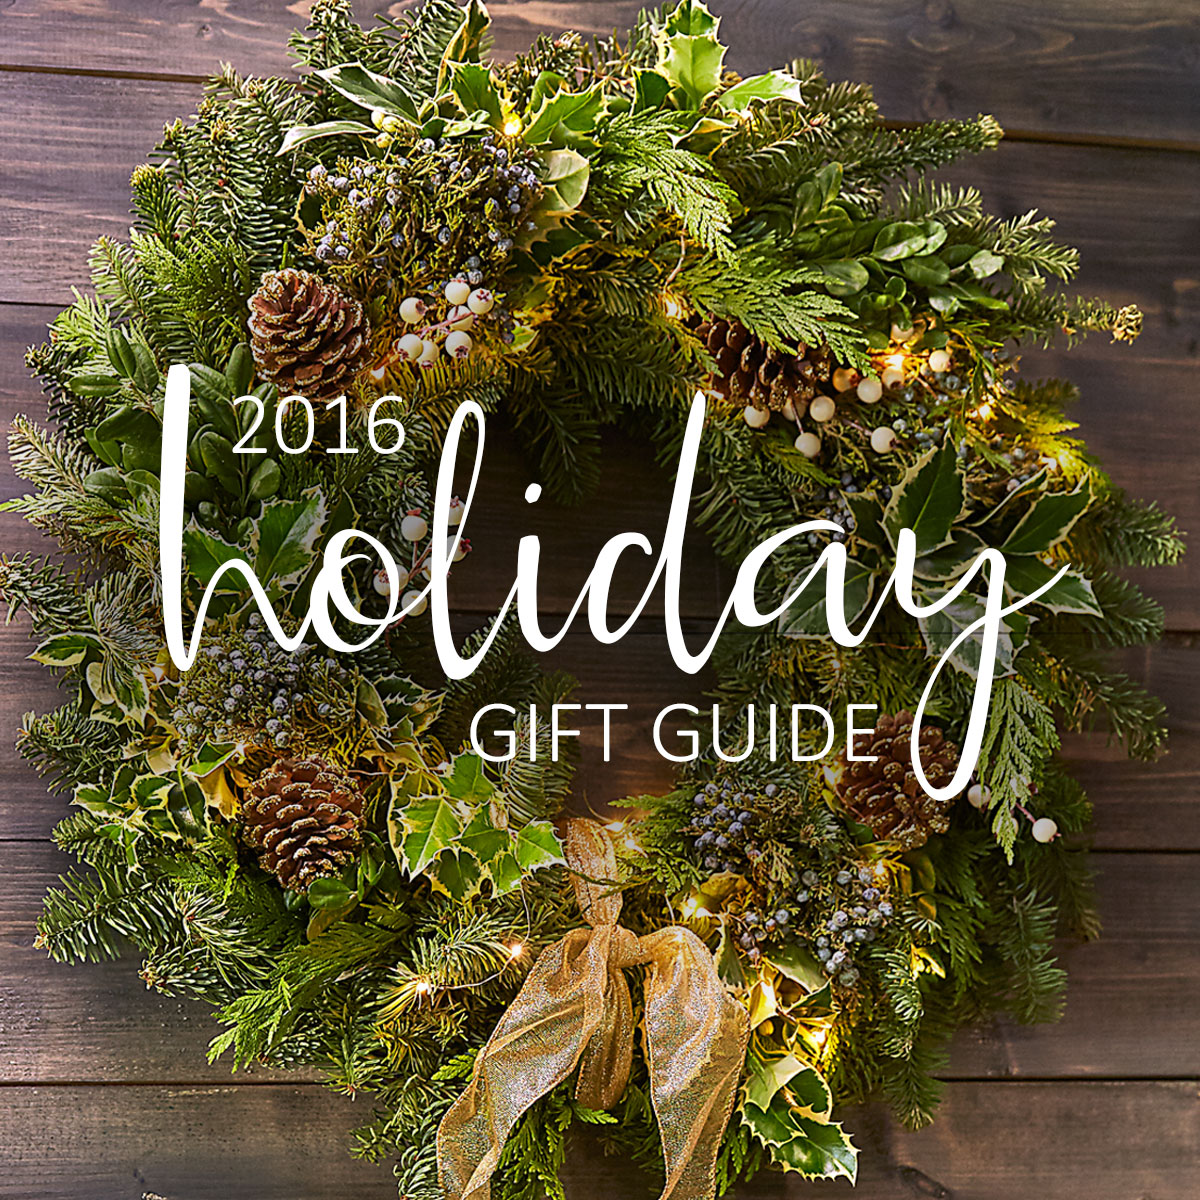 holidaygiftguide-1200x1200